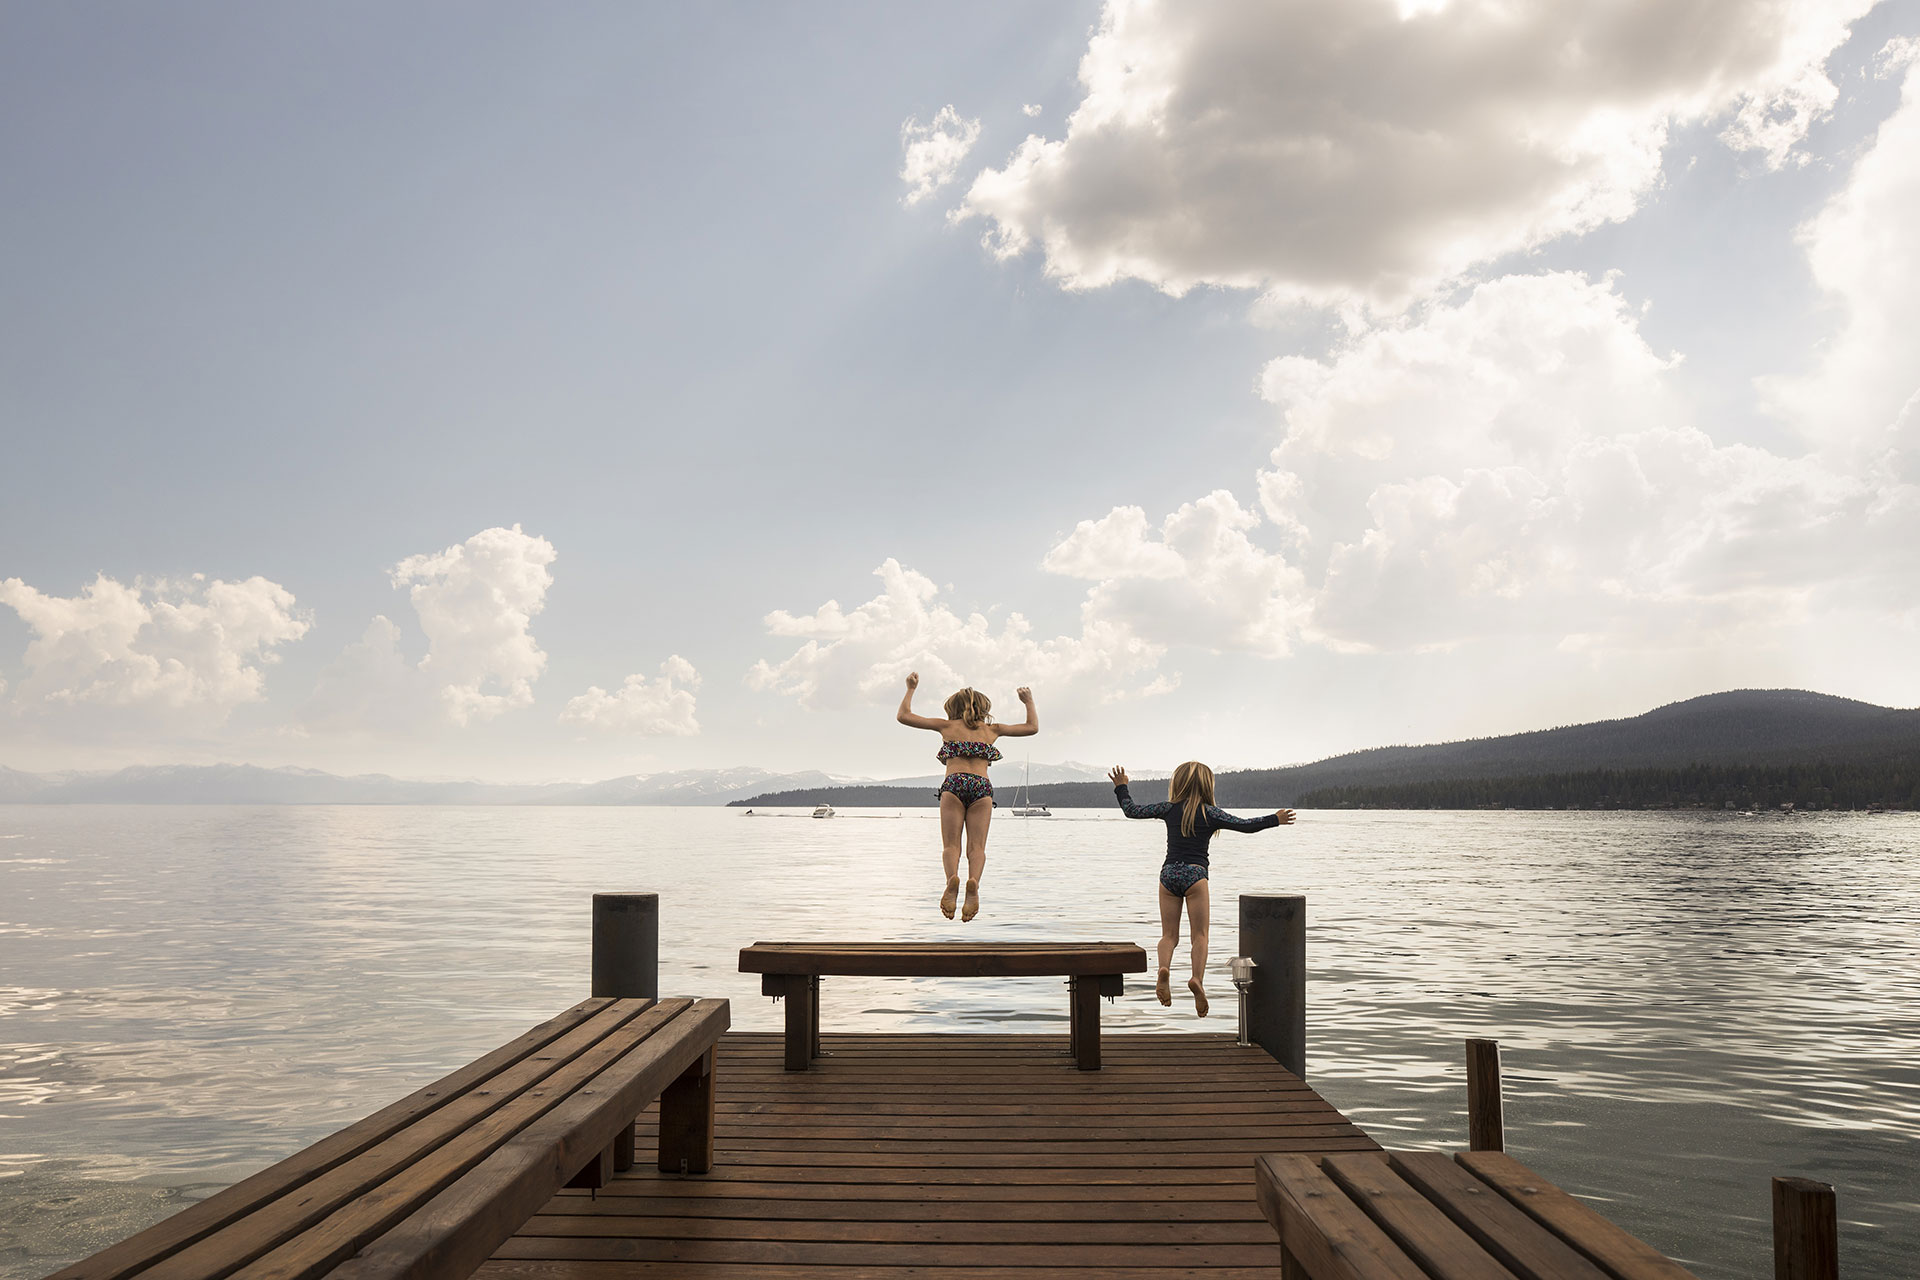 Kids Jumping Off Dock into Water in North Lake Tahoe